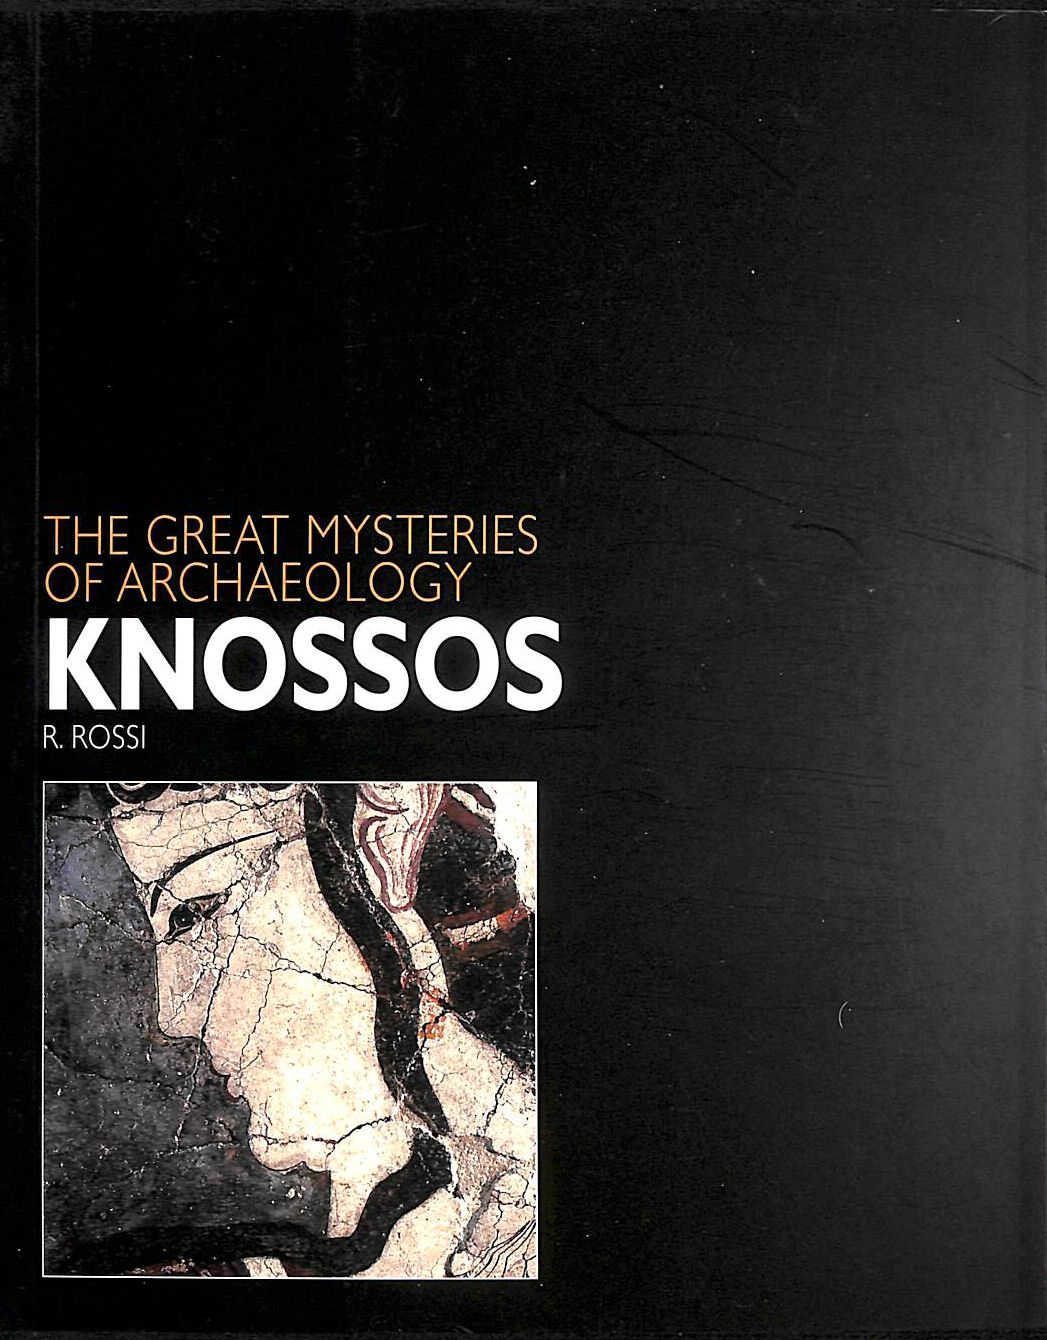 Image for Knossos (Great Mysteries of Archaeology)